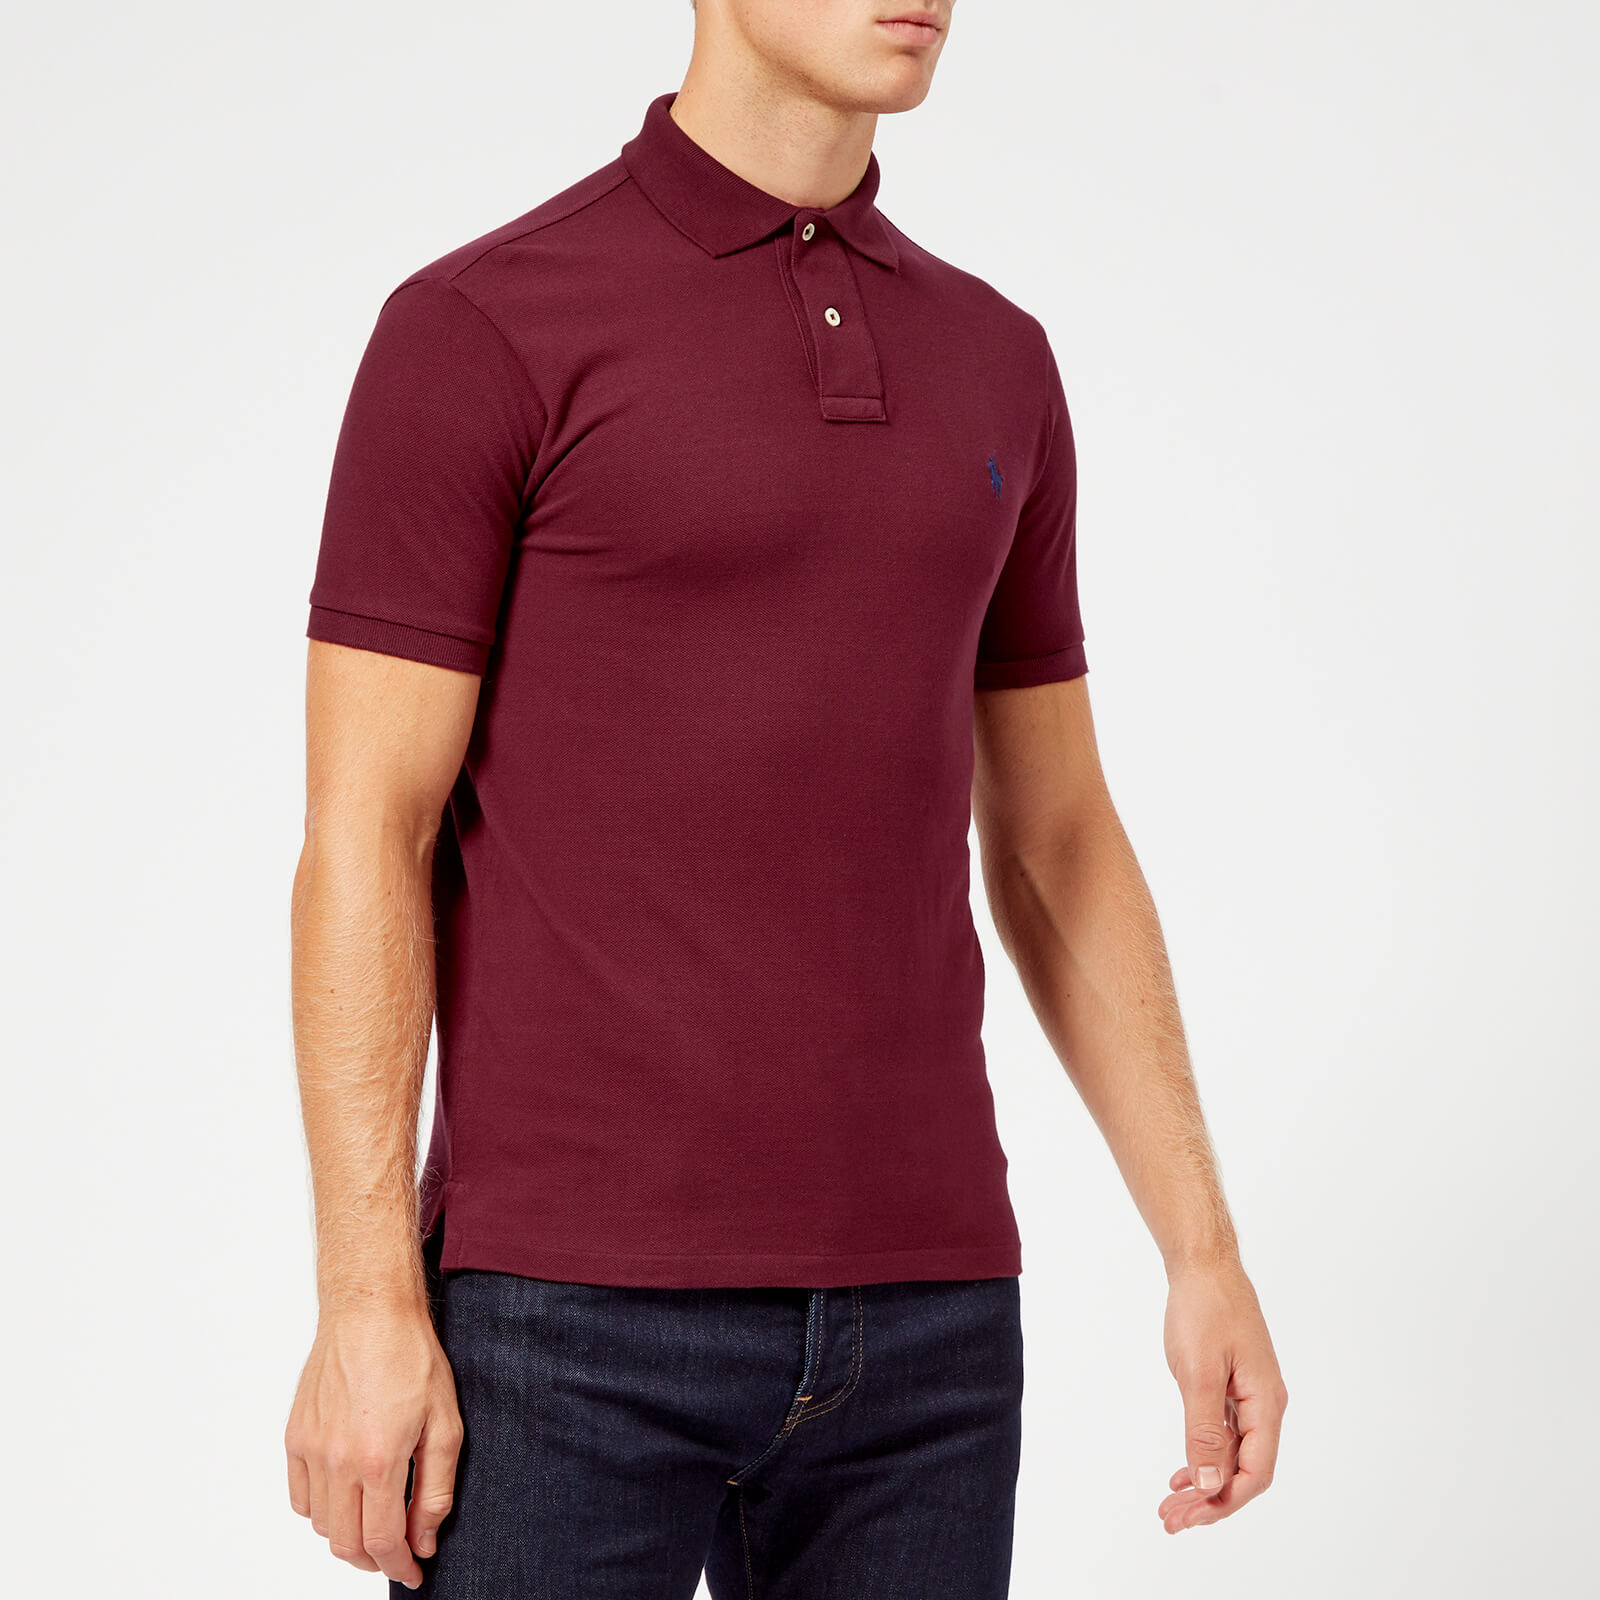 007f07d4 Polo Ralph Lauren Men's Short Sleeve Slim Fit Polo Shirt - Classic Wine -  Free UK Delivery over £50